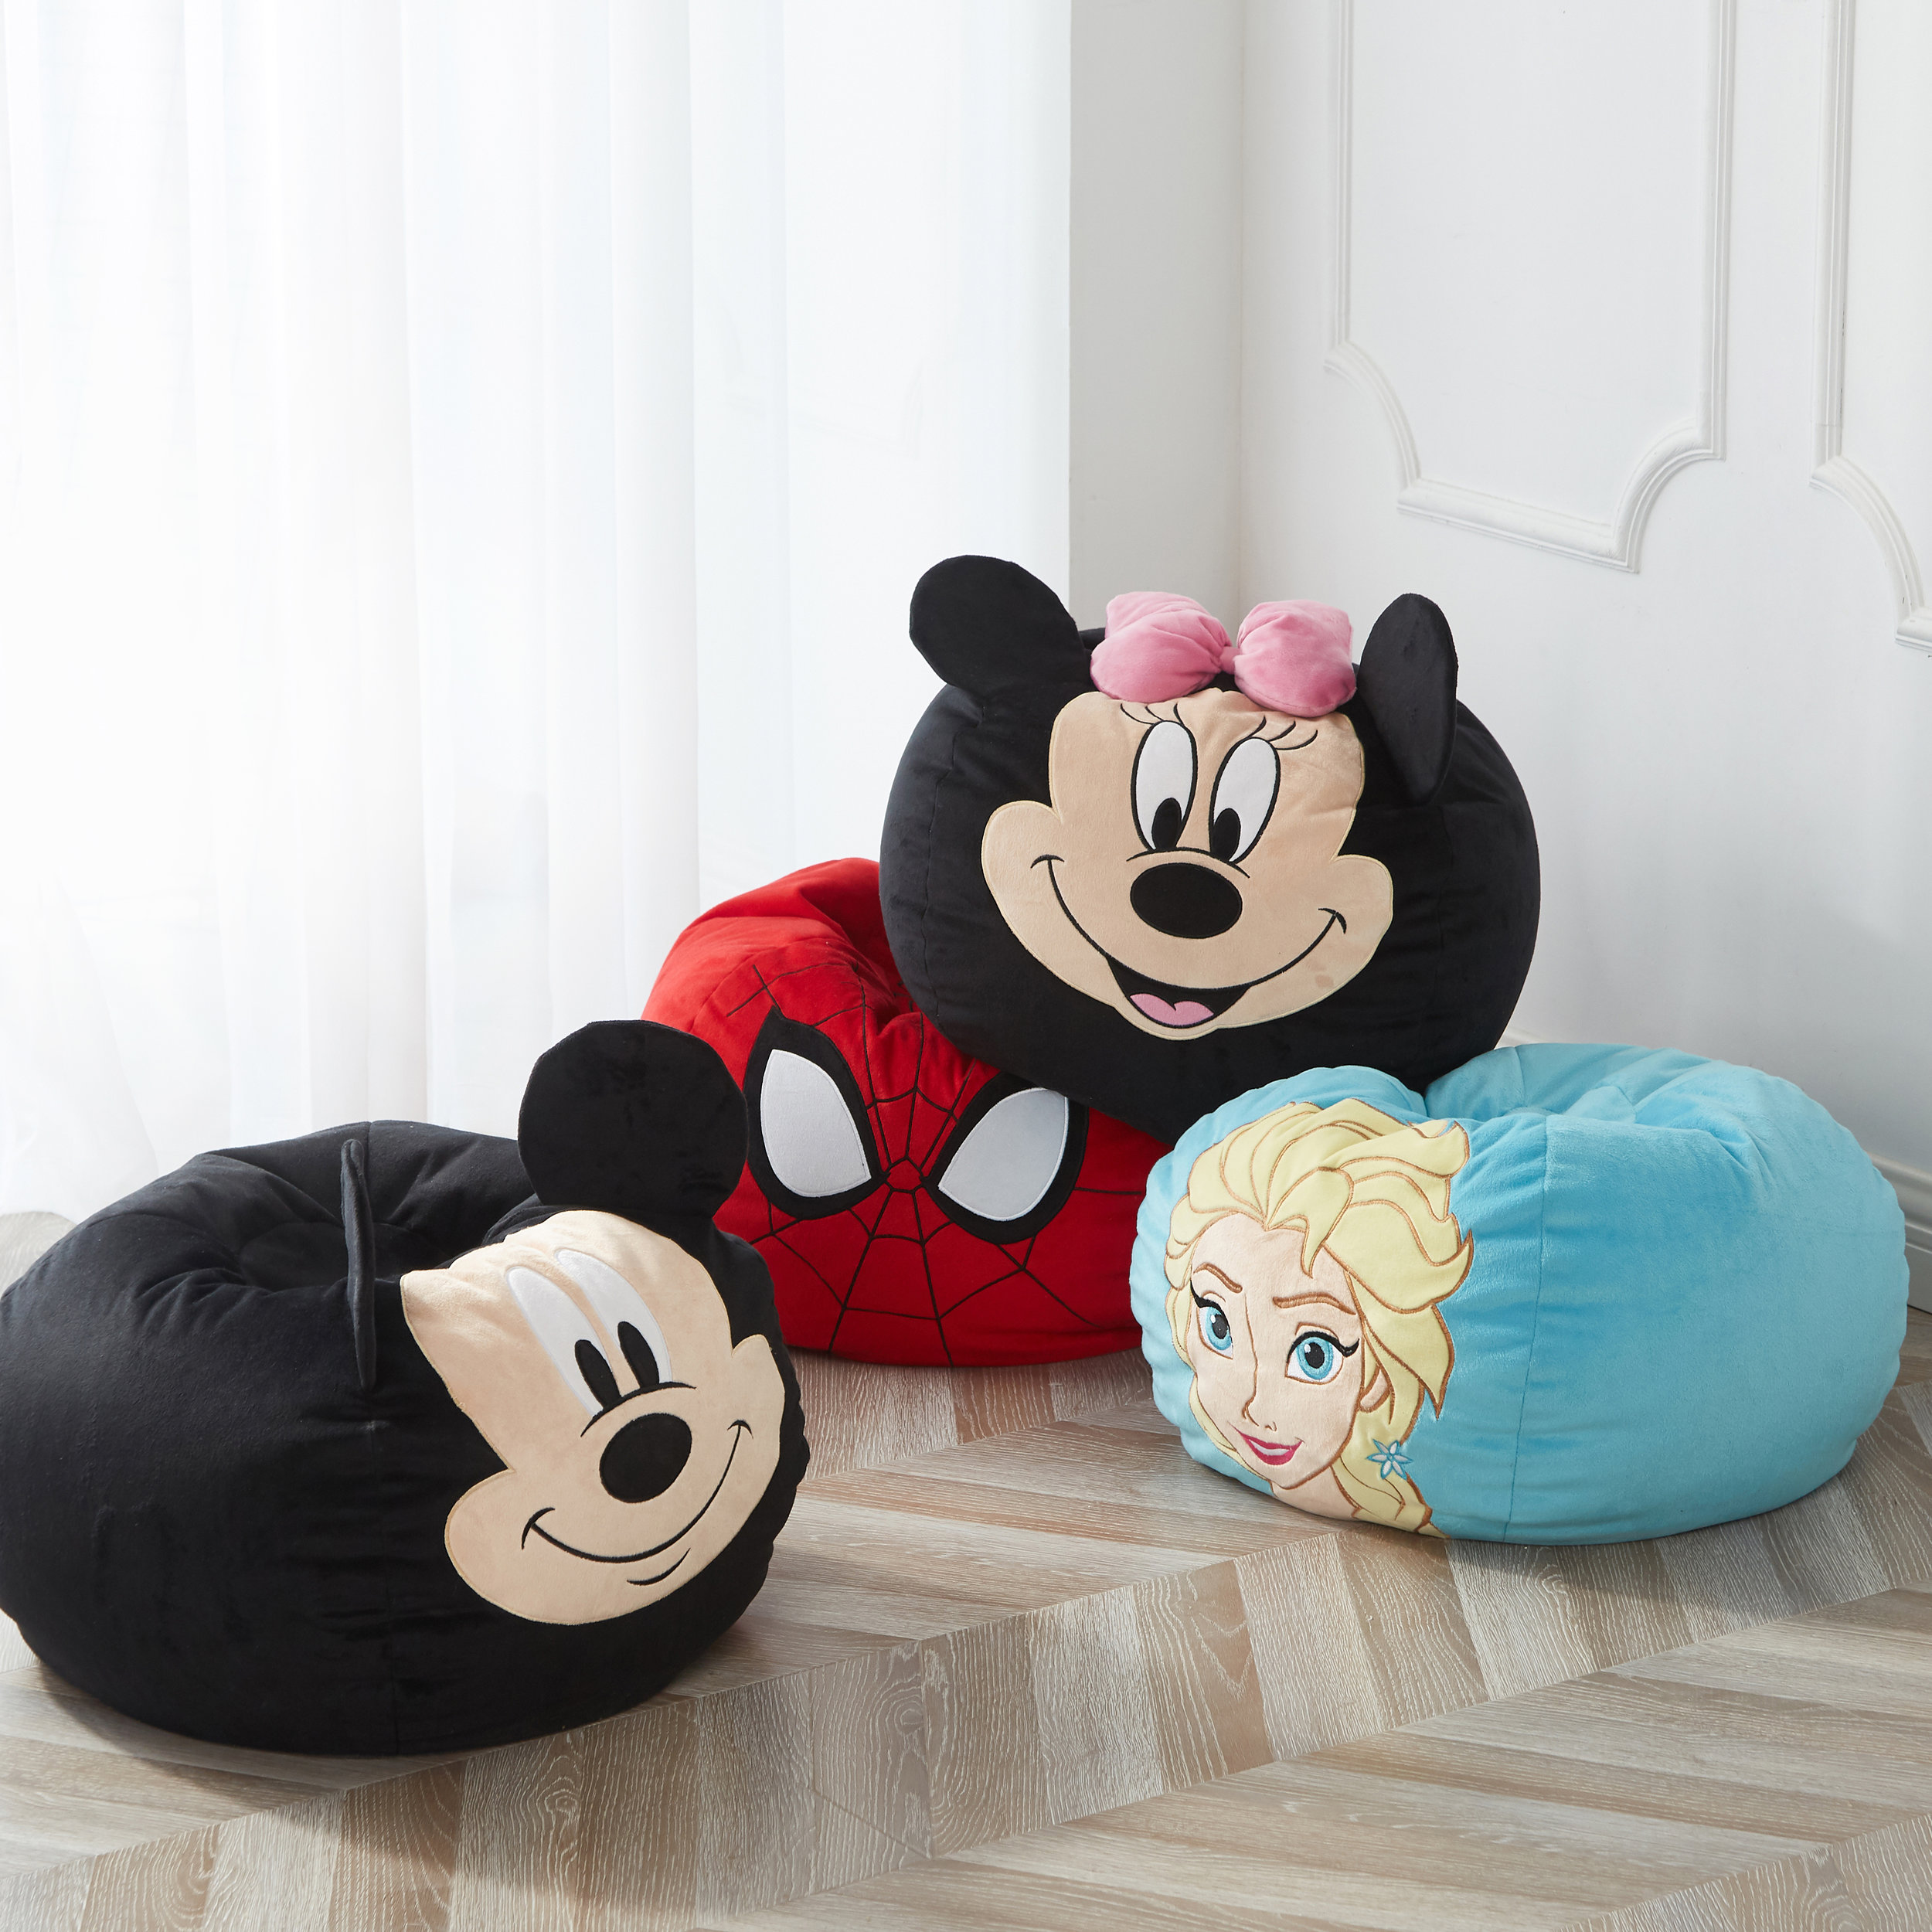 Disney bean chairs.jpg